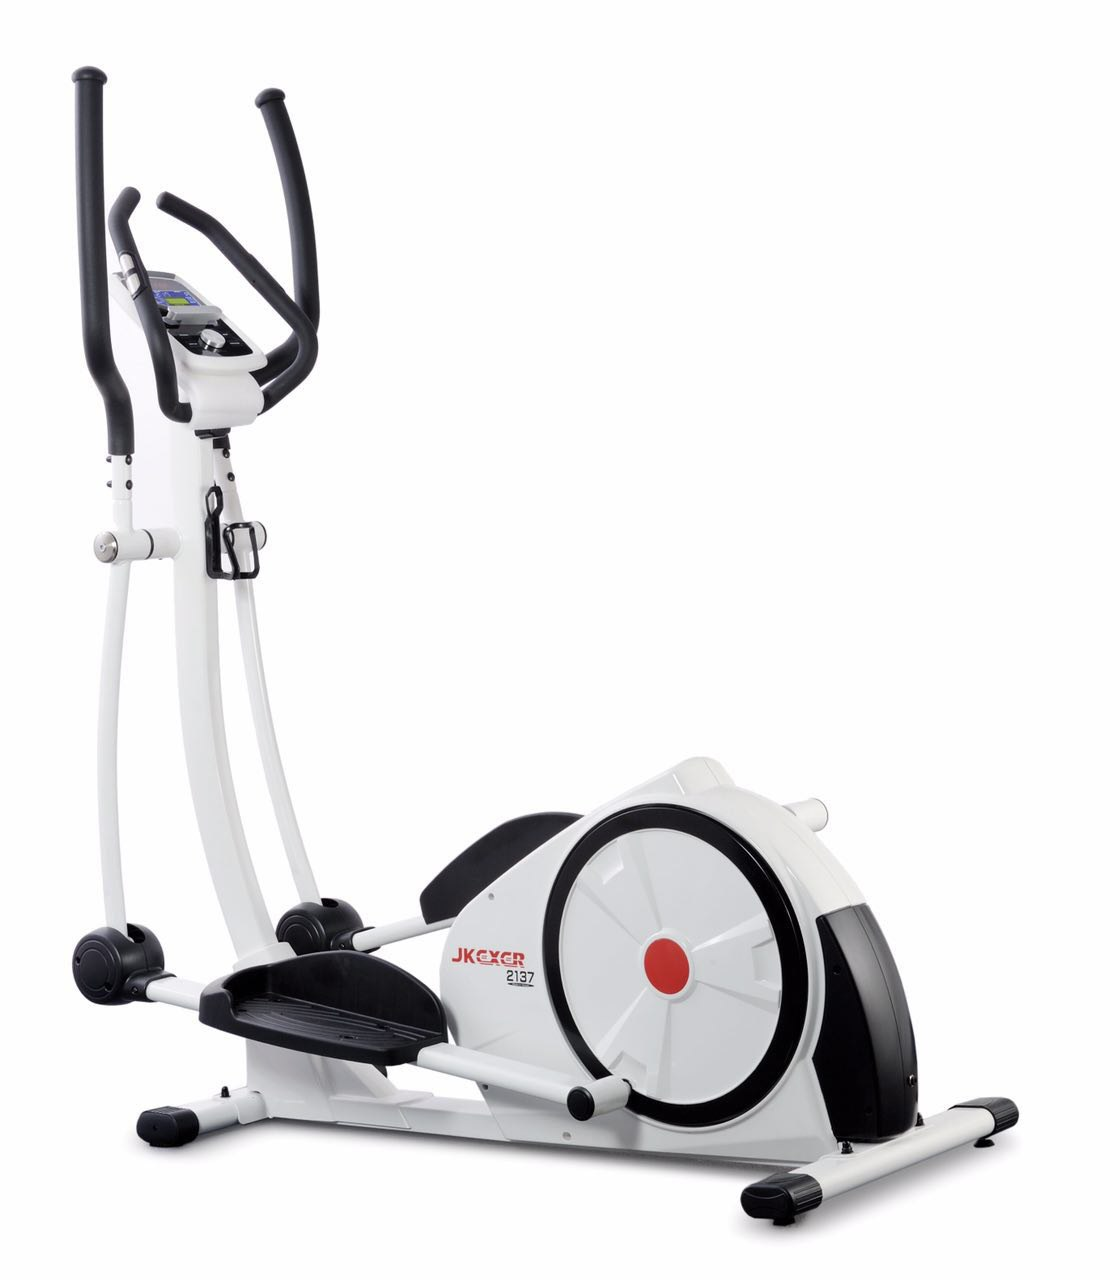 Jkexer Nuwave 2137 Elliptical